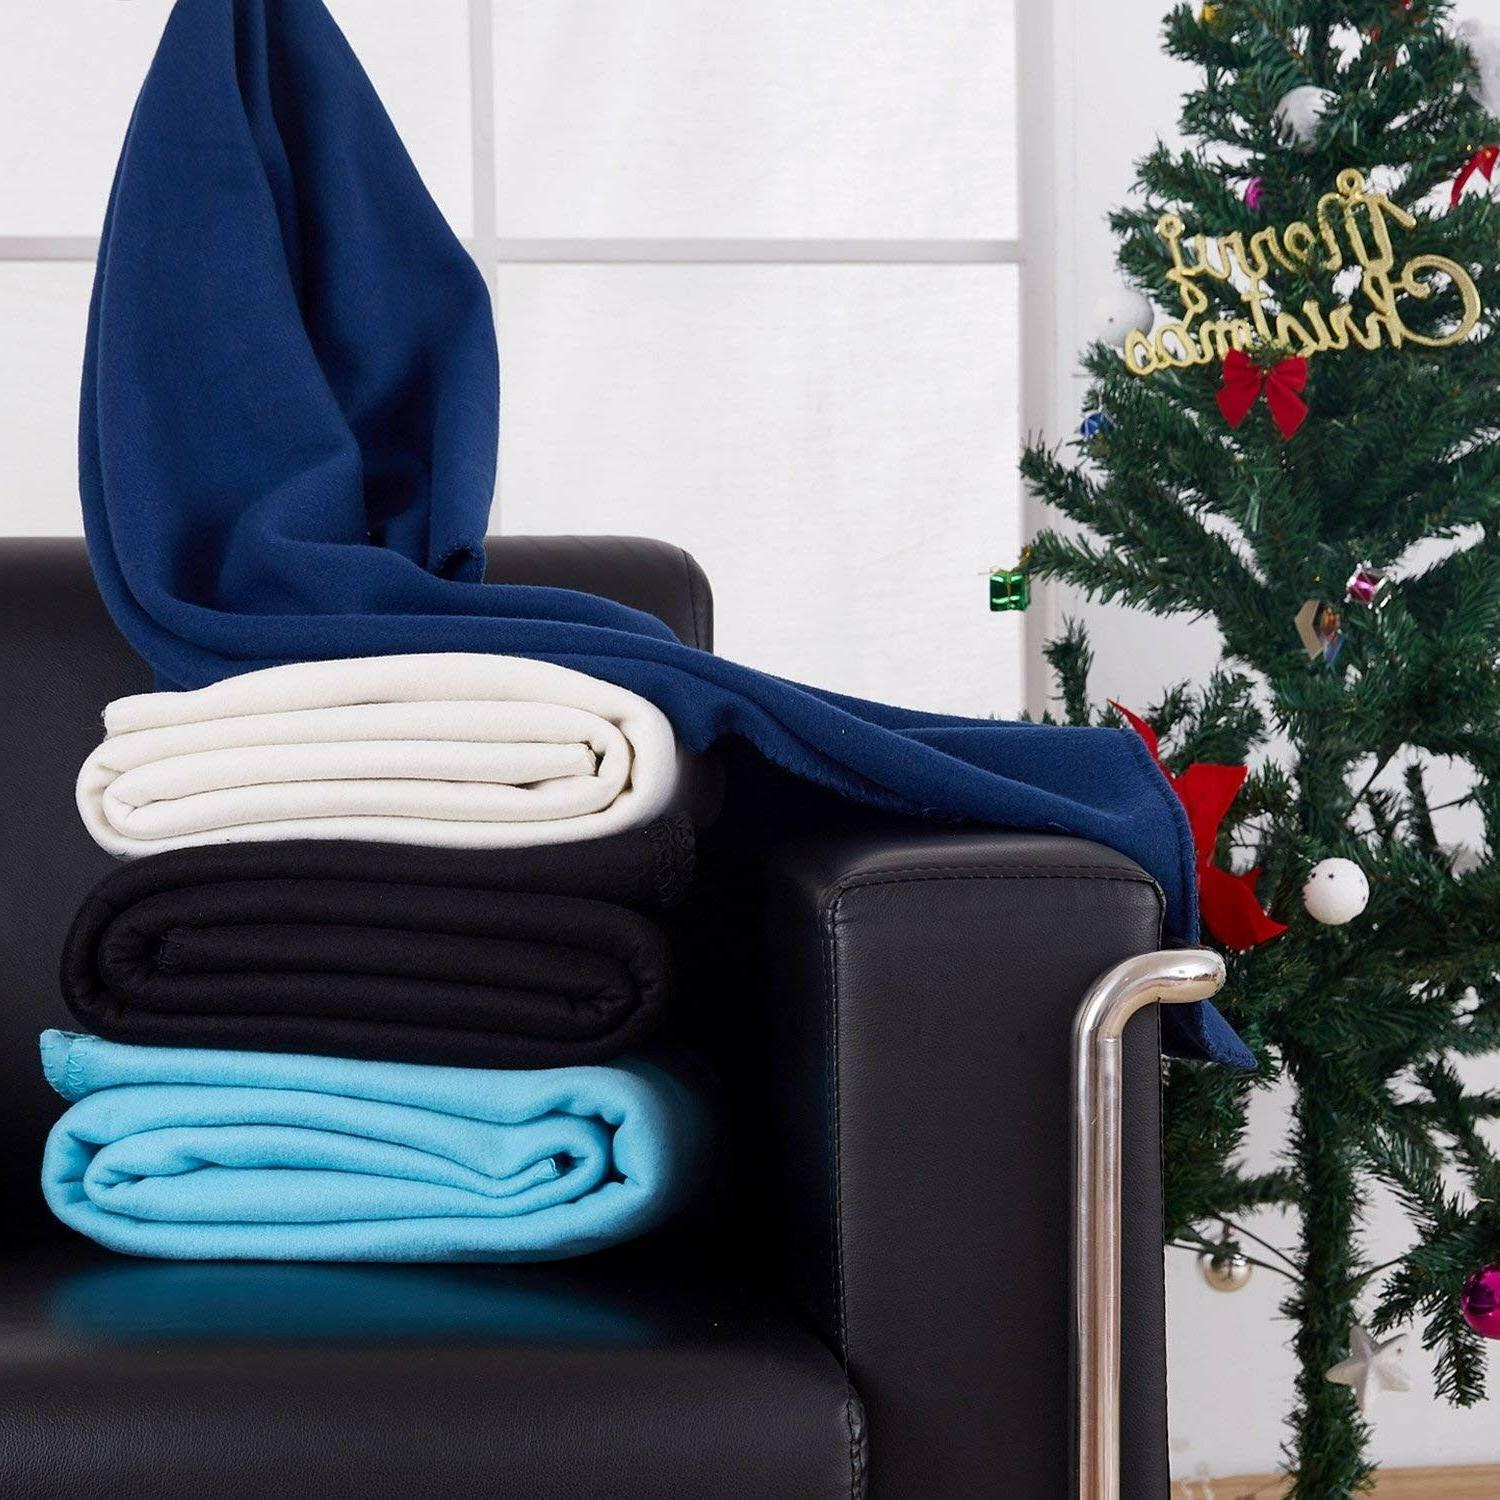 2 fleece blankets soft microfiber all season